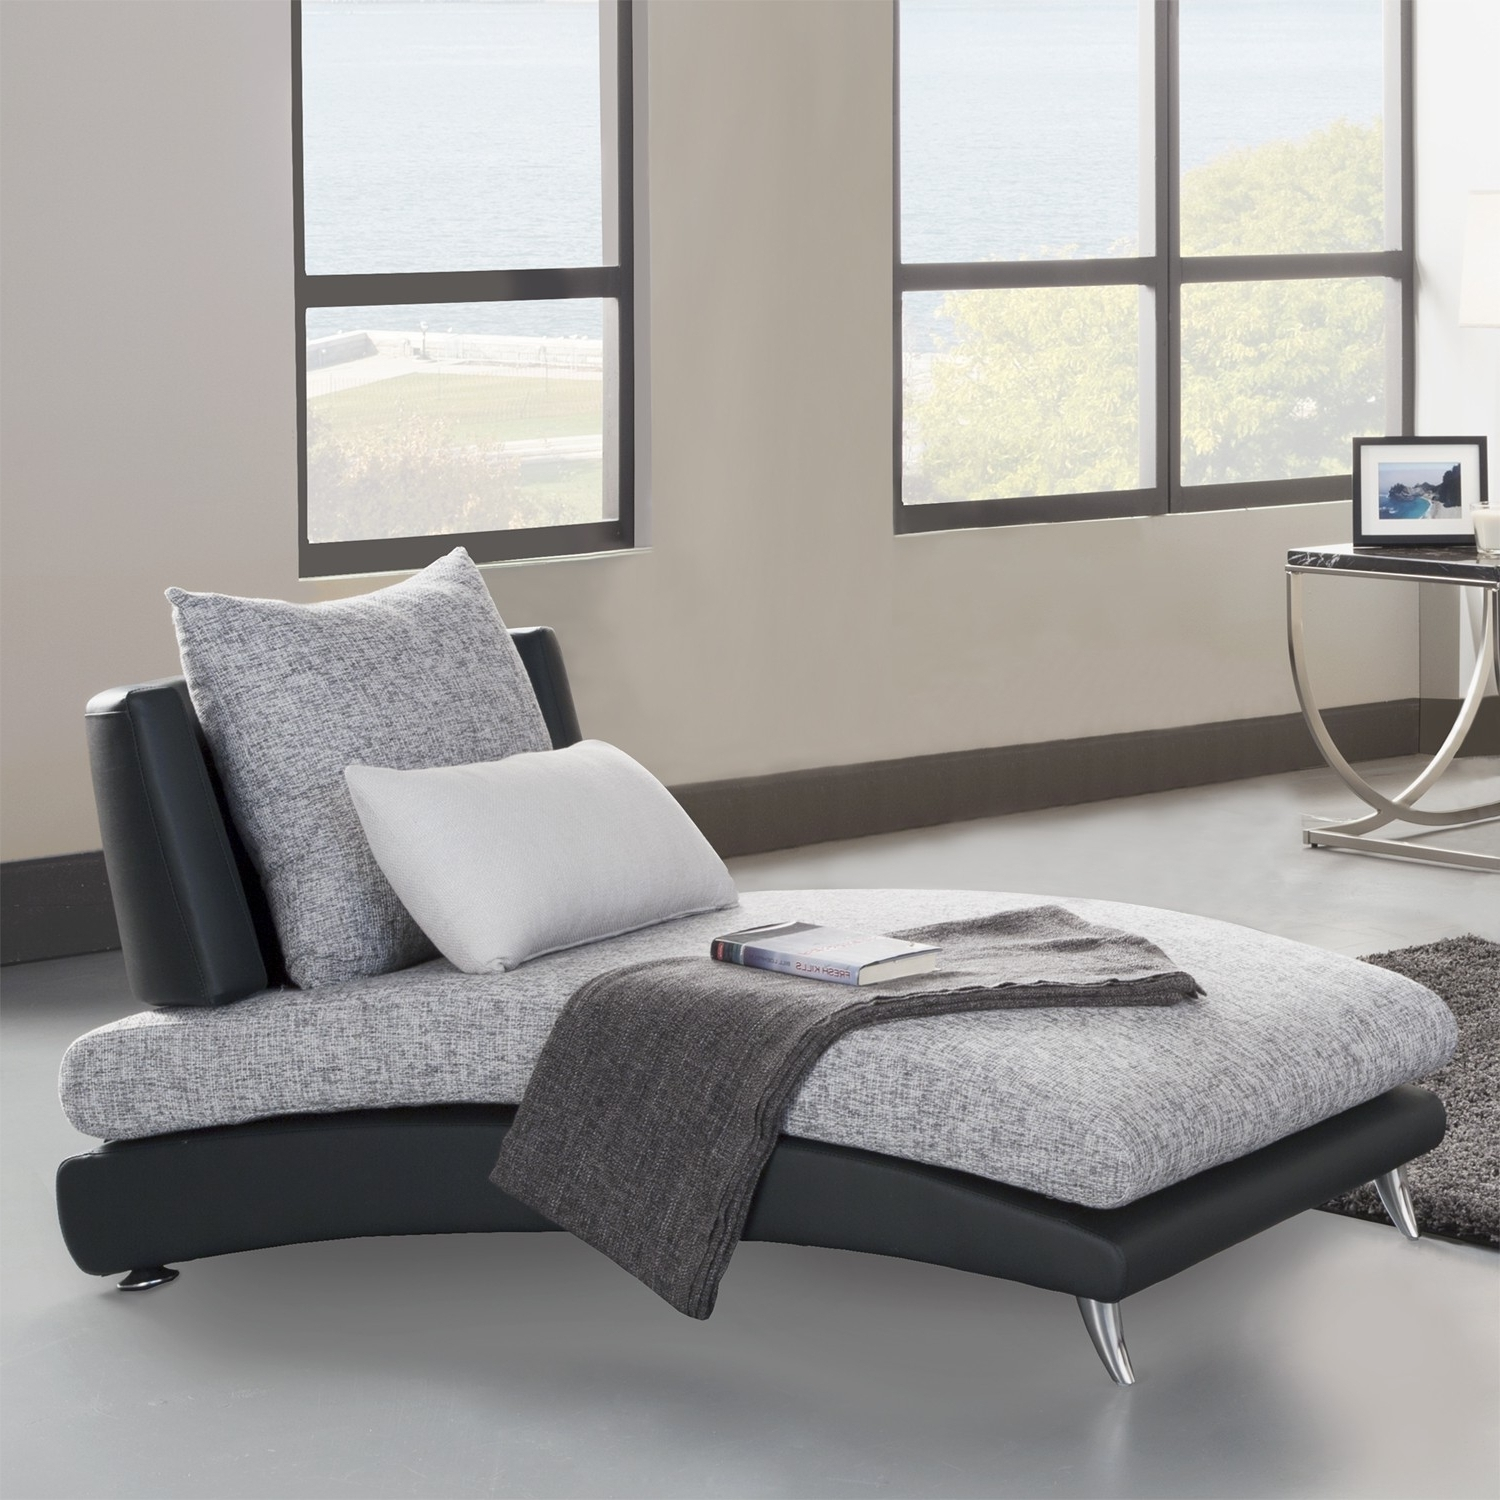 Preferred Bedroom Chaise Lounge Chairs In Lounge Chair : Bedroom Chaise Lounge Chairs For Best Attractive (View 13 of 15)